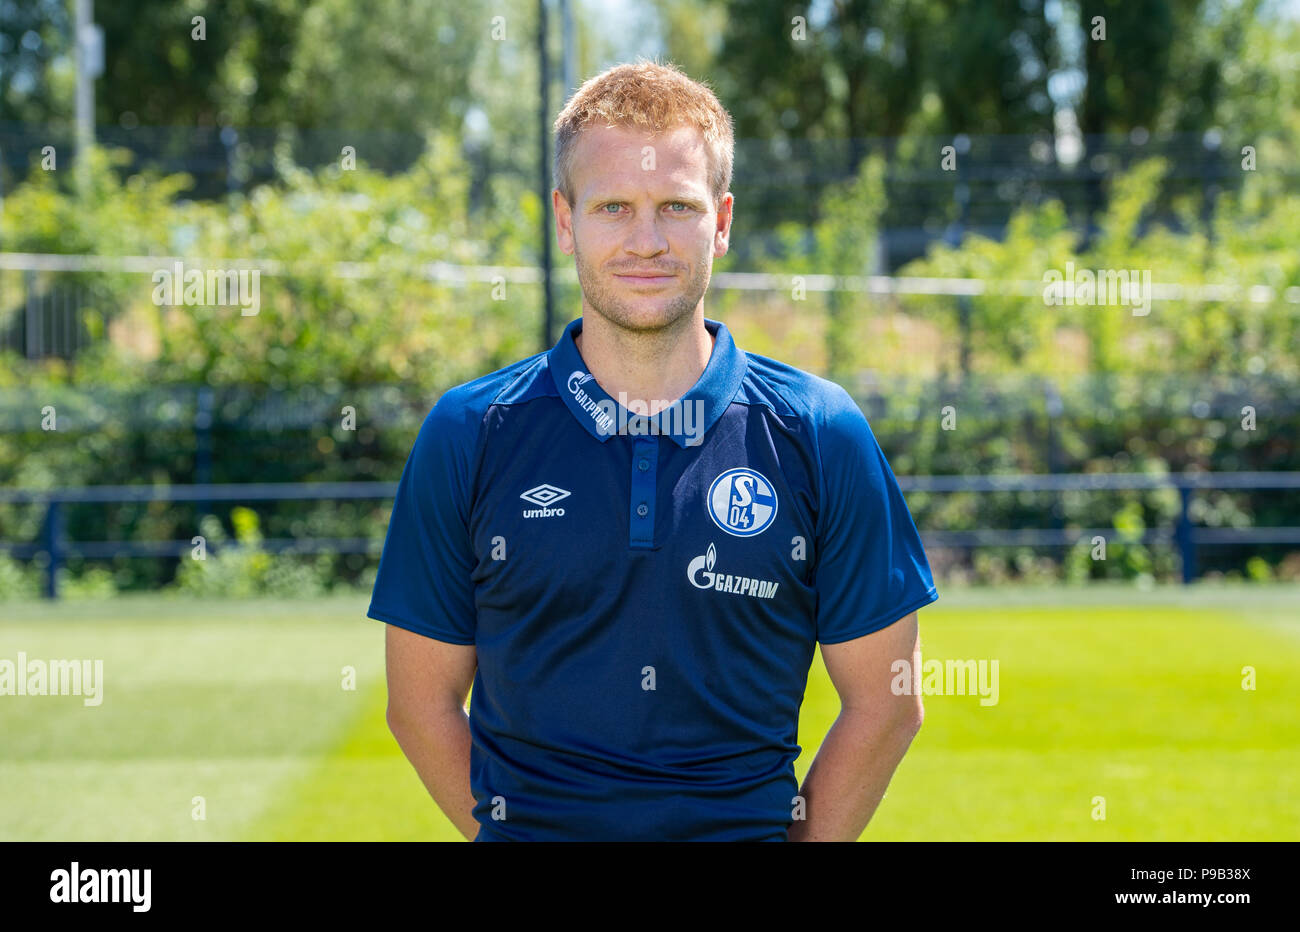 Gelsenkirchen, Germany. 16th July, 2018. 16.07.2018, Nordrhein-Westfalen, Gelsenkirchen: 1. Fußball Bundesliga, Saison 2018/2019, Offizieller Fototermin mit dem Mannschaftsfoto vom FC Schalke 04. Schalkes Co-Trainer Peter Perchtold Credit: Guido Kirchner/dpa/Alamy Live News - Stock Image